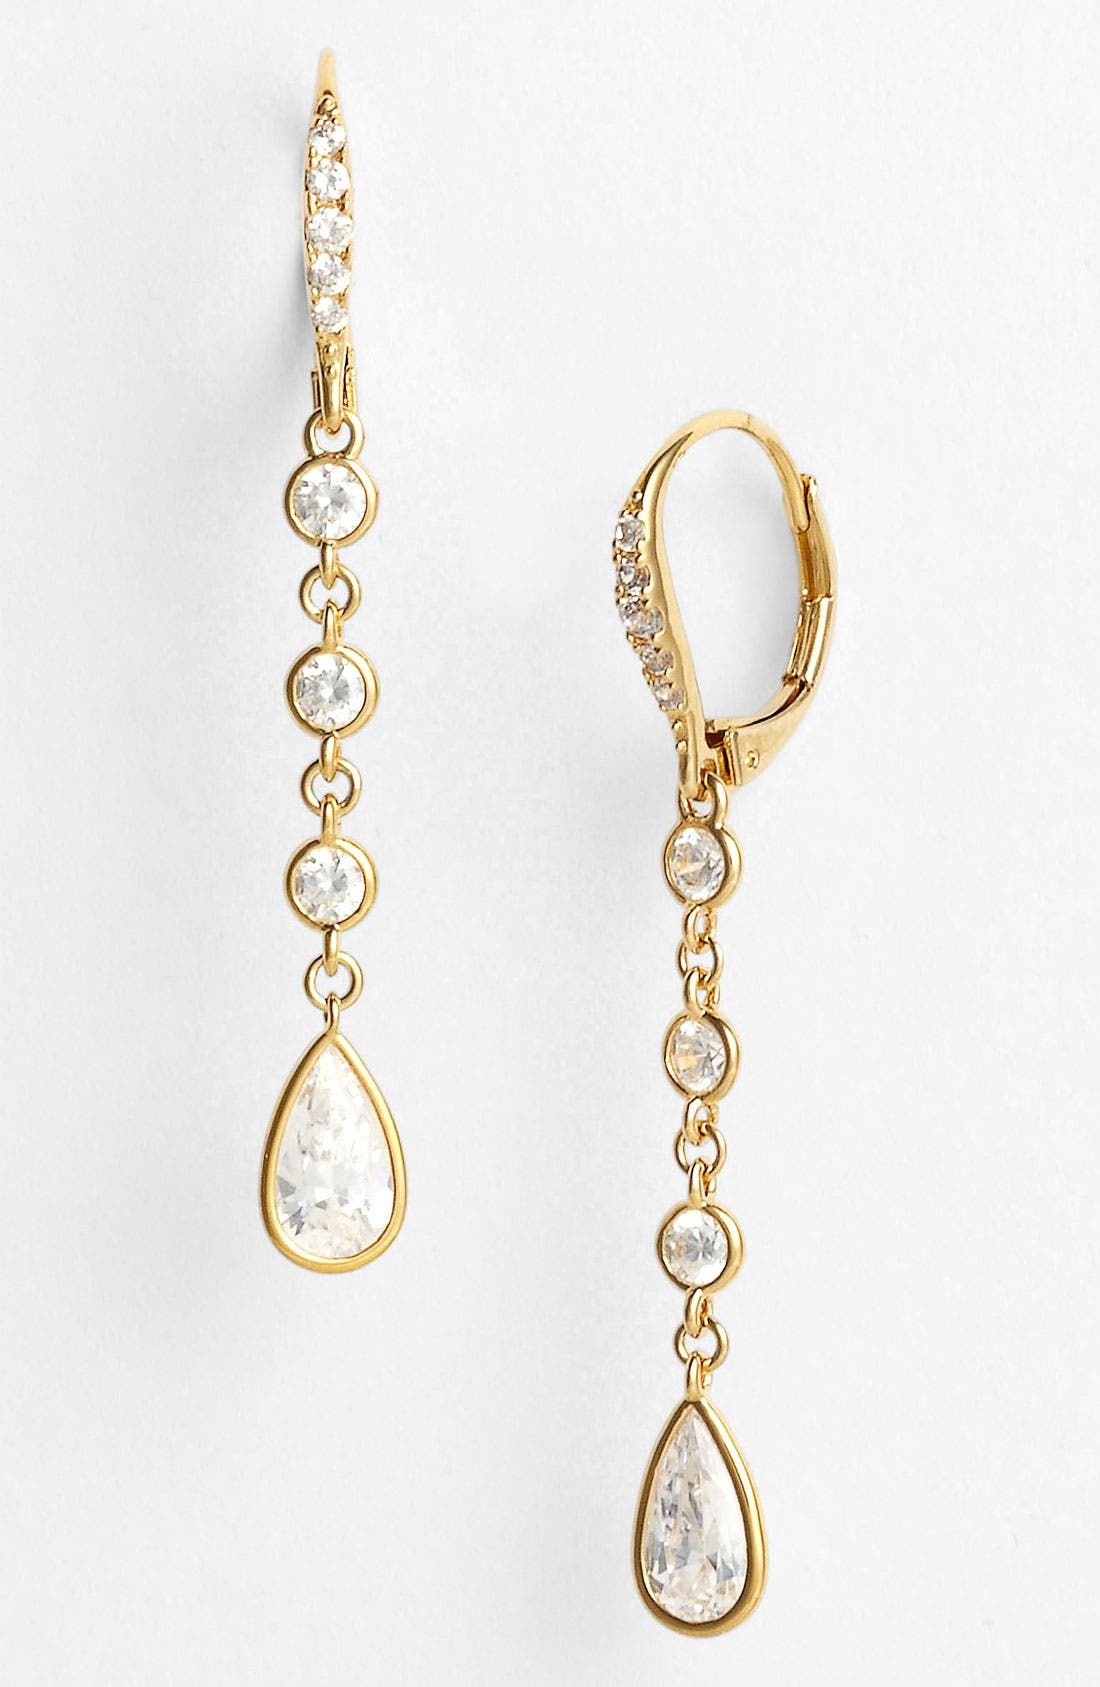 Main Image - Nadri Round & Teardrop Cubic Zirconia Earrings (Nordstrom Exclusive)